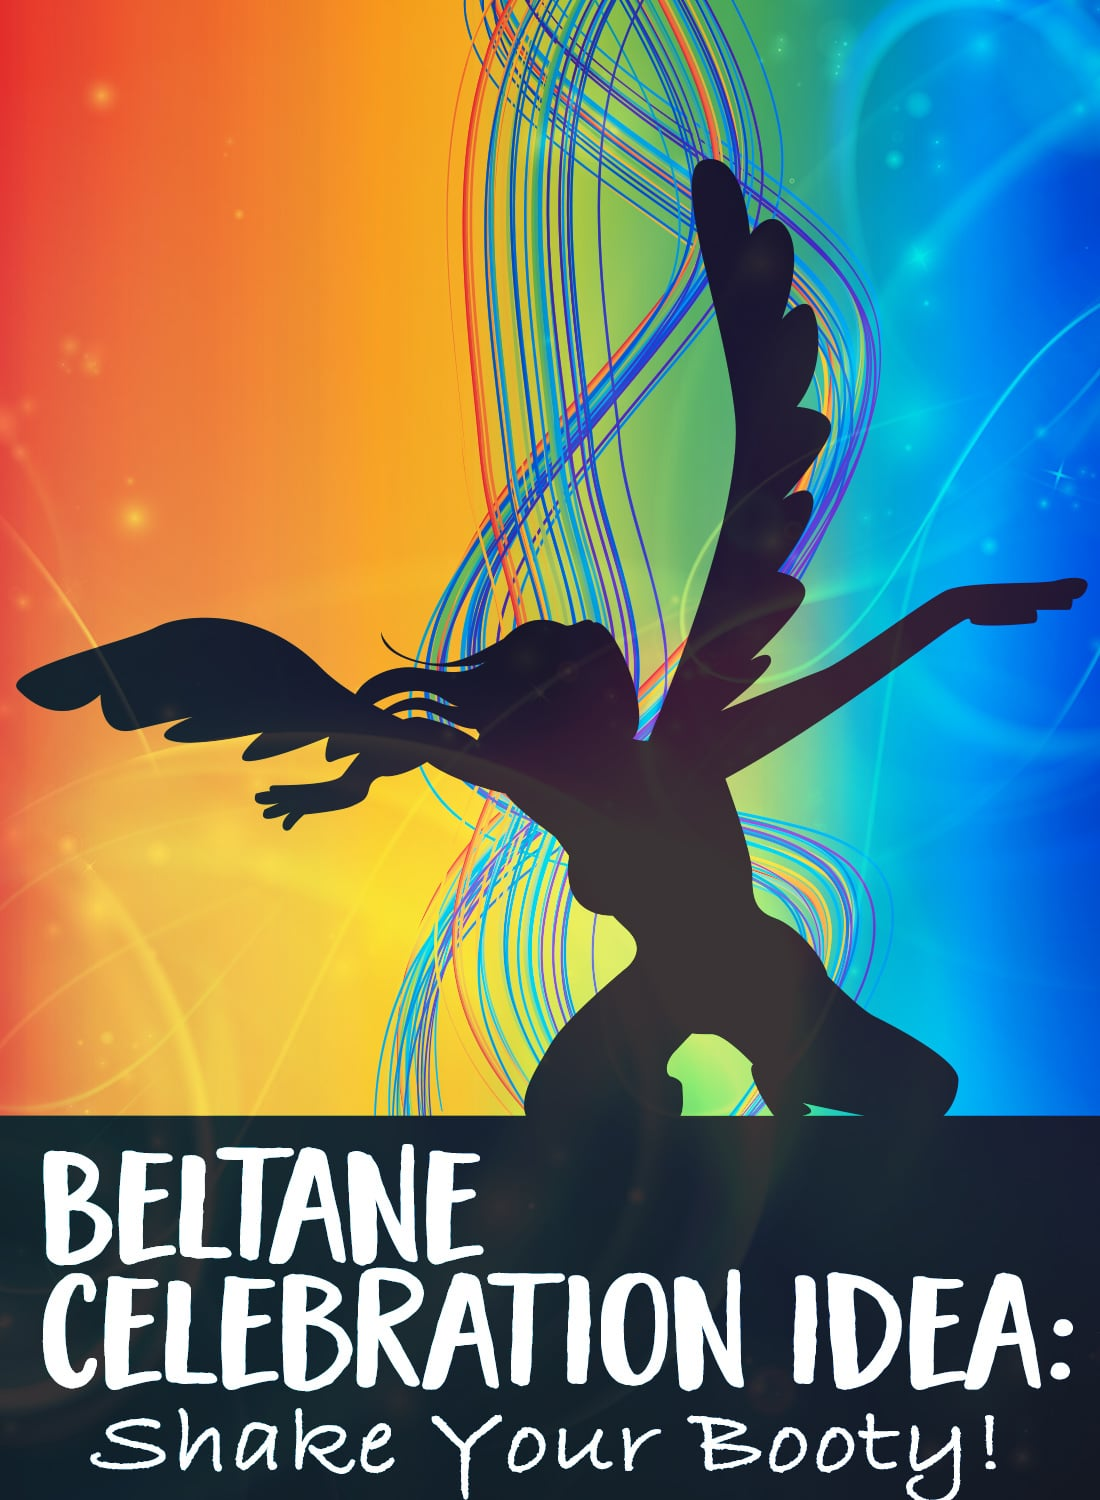 Beltane Celebration Idea - Dance and Shake Your Booty